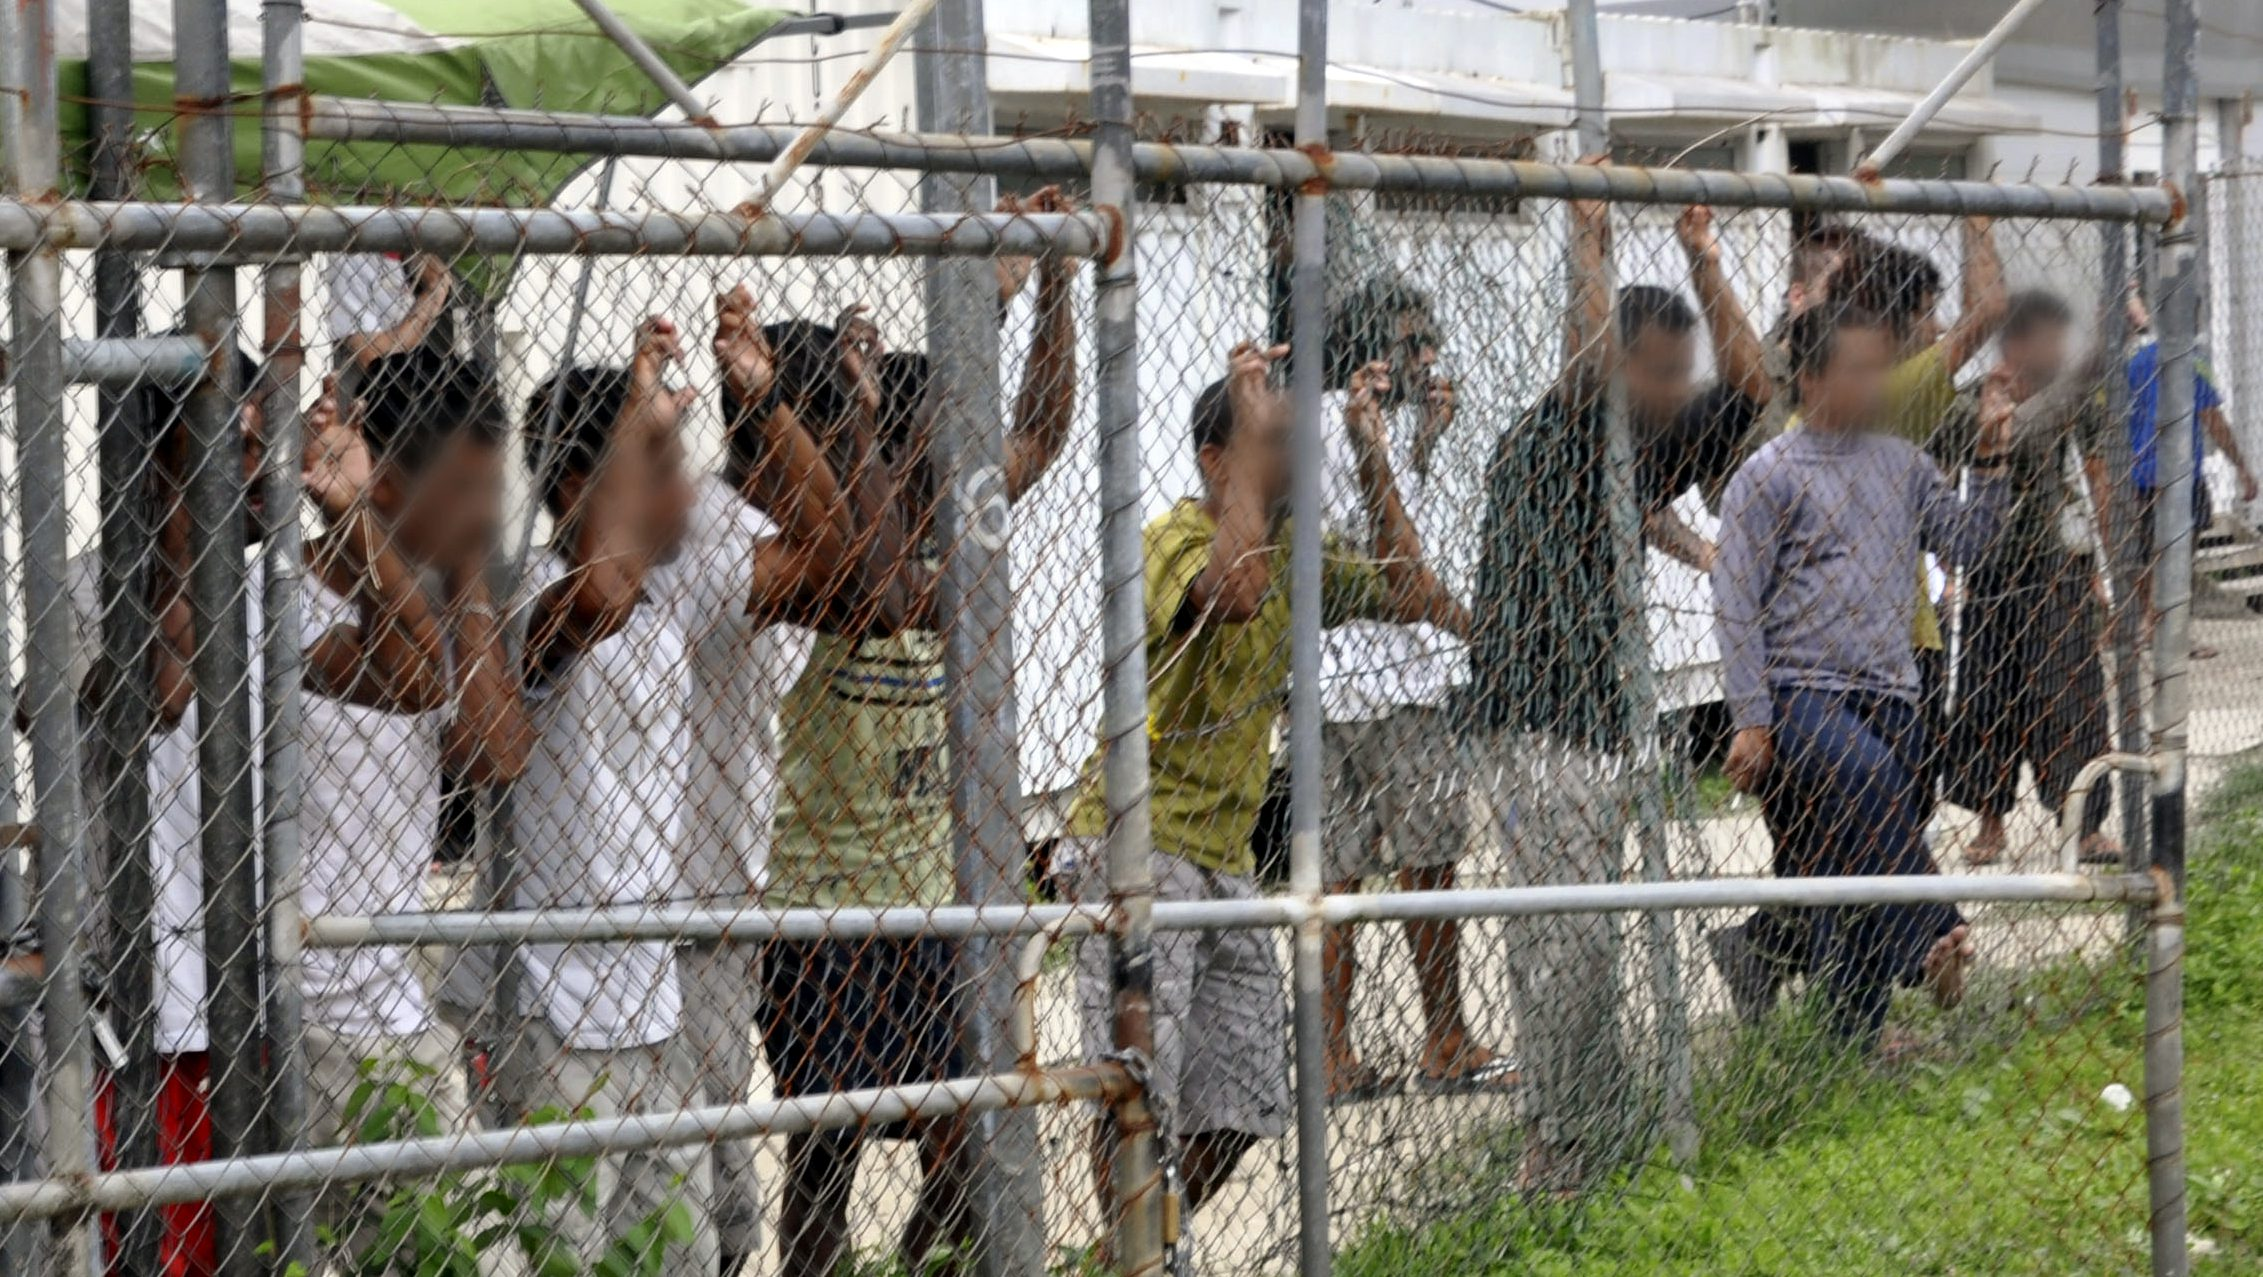 epa05279193 A picture dated 21 March 2014 and made available on 27 April 2016 shows asylum seekers staring at media from behind a fence at the Oscar compound in the Manus Island detention center, Papua New Guinea. Papua New Guinea (PNG) Prime Minister Peter O'Neill said on 27 April 2016, that Australia's Manus Island detention center will be closes following a decision by the PNG Supreme Court declaring it as unconstitutional. According to reports, O'Neil urged the Australian government to seek alternative arrangements for asylum seekers.  EPA/EOIN BLACKWELL -- BEST QUALITY AVAILABLE -- ATTENTION EDITORS: PICTURE PIXELATED AT SOURCE -- AUSTRALIA AND NEW ZEALAND OUT